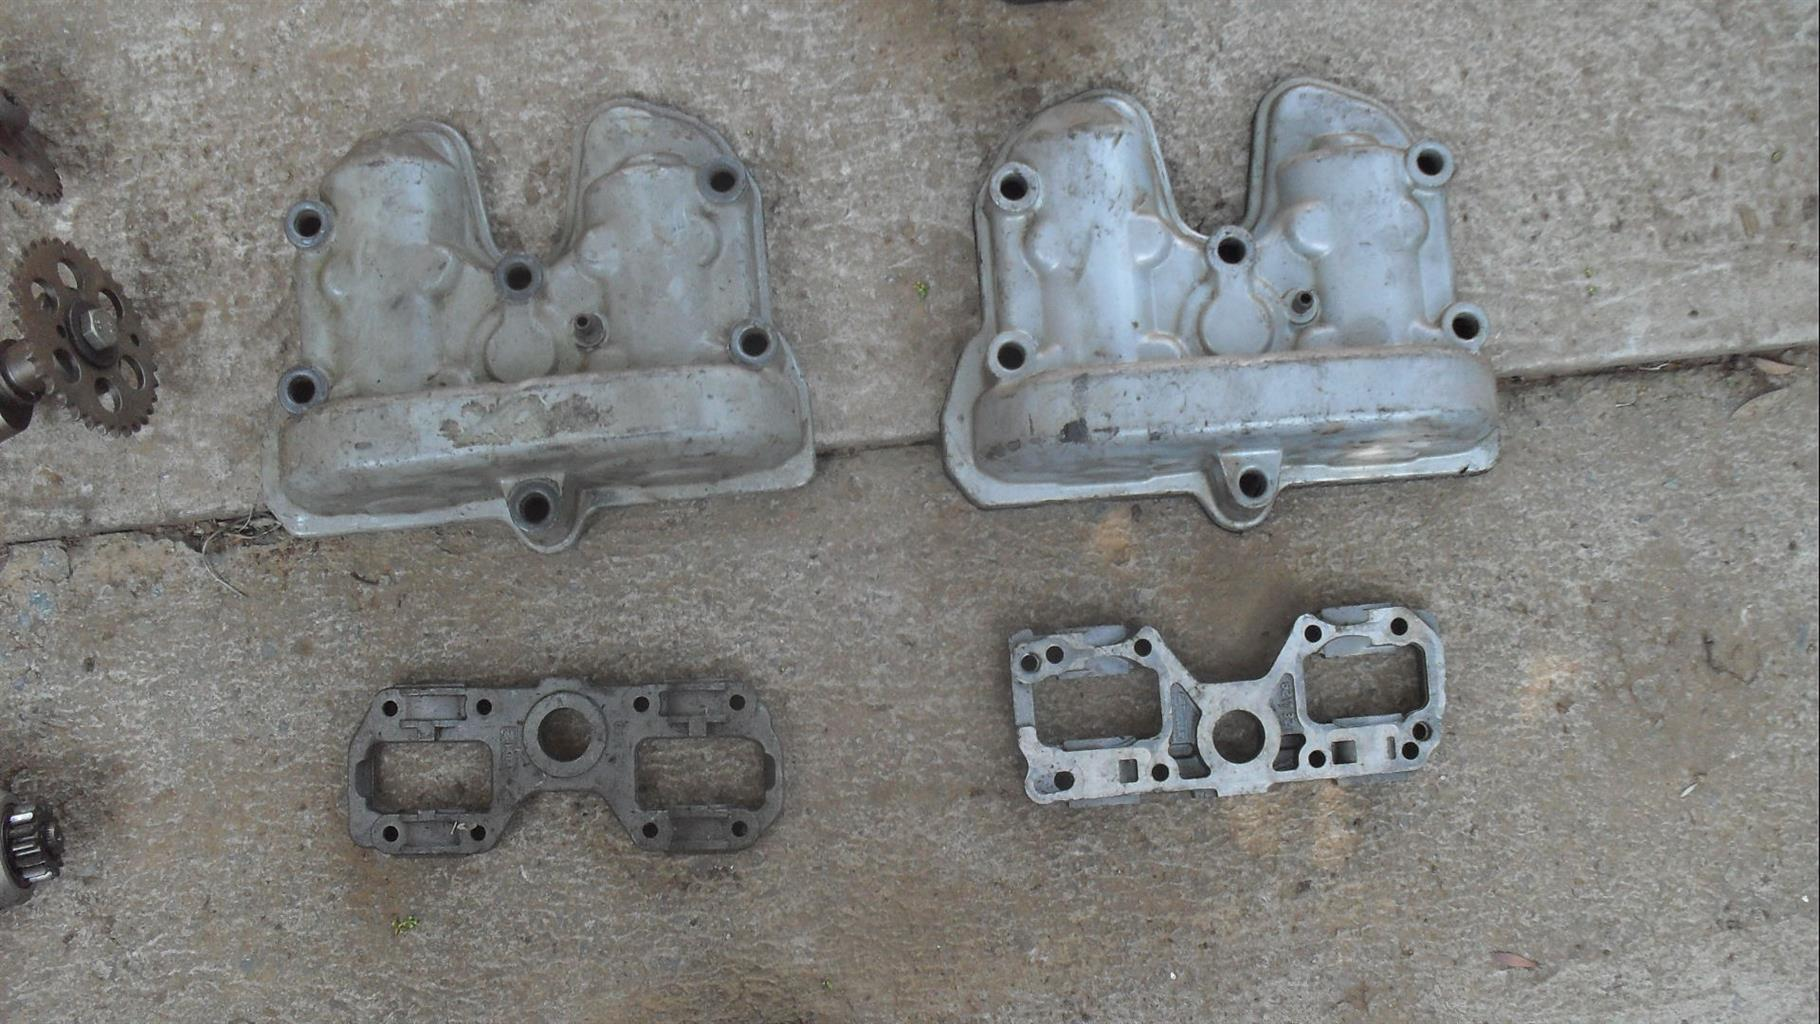 2005 Bombardier DS 650 Spares for Sale